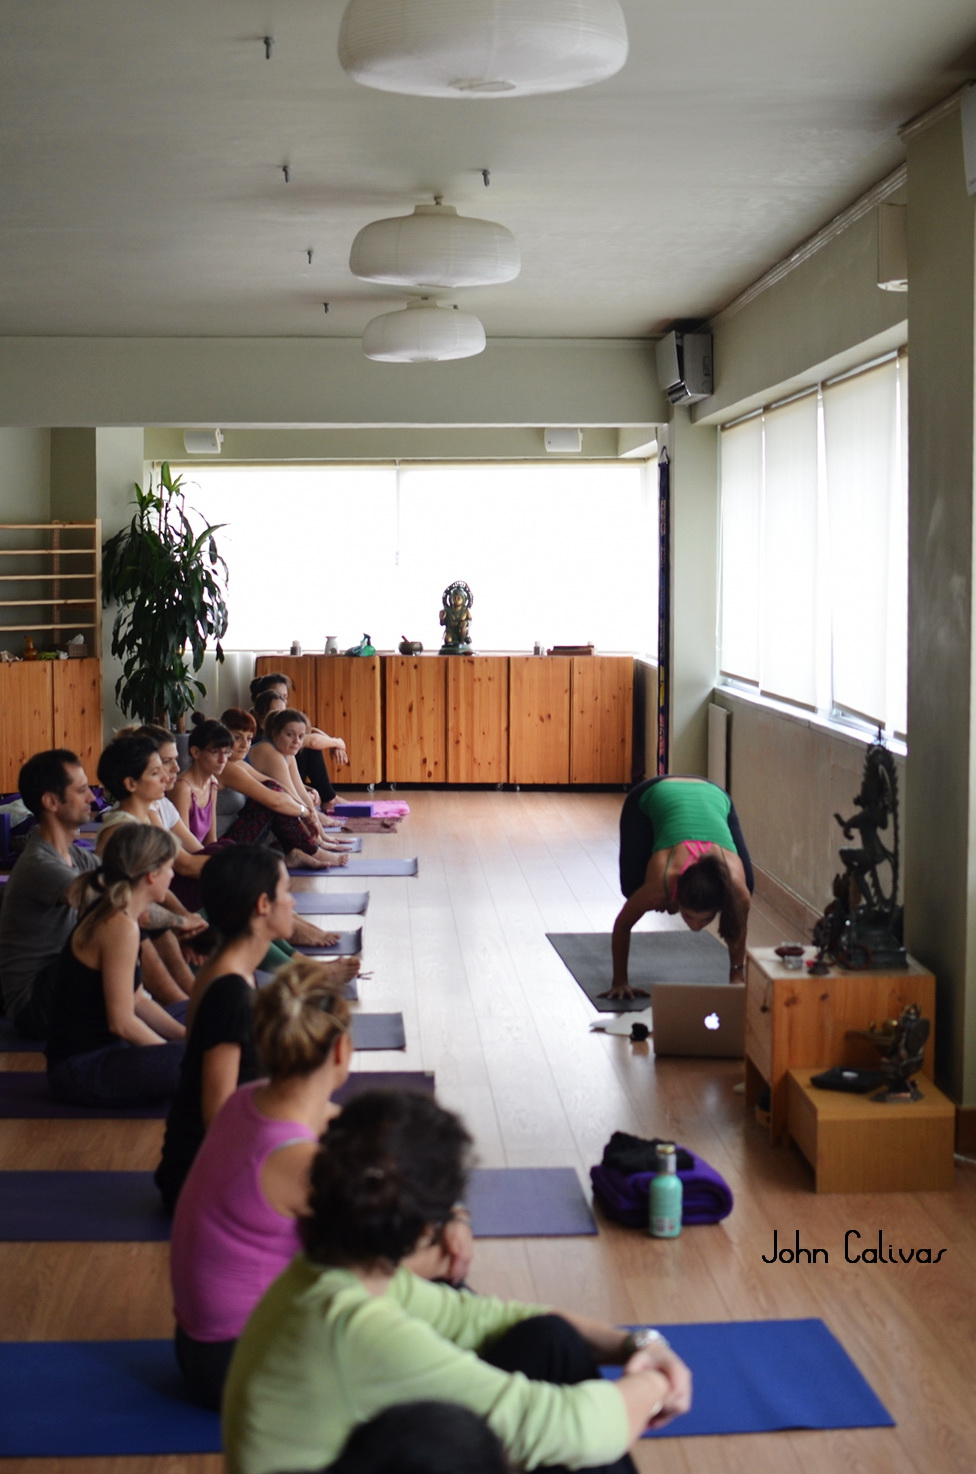 Candace teaching at Bhavana Yoga Studio, Athens, Greece. February 2, 2014